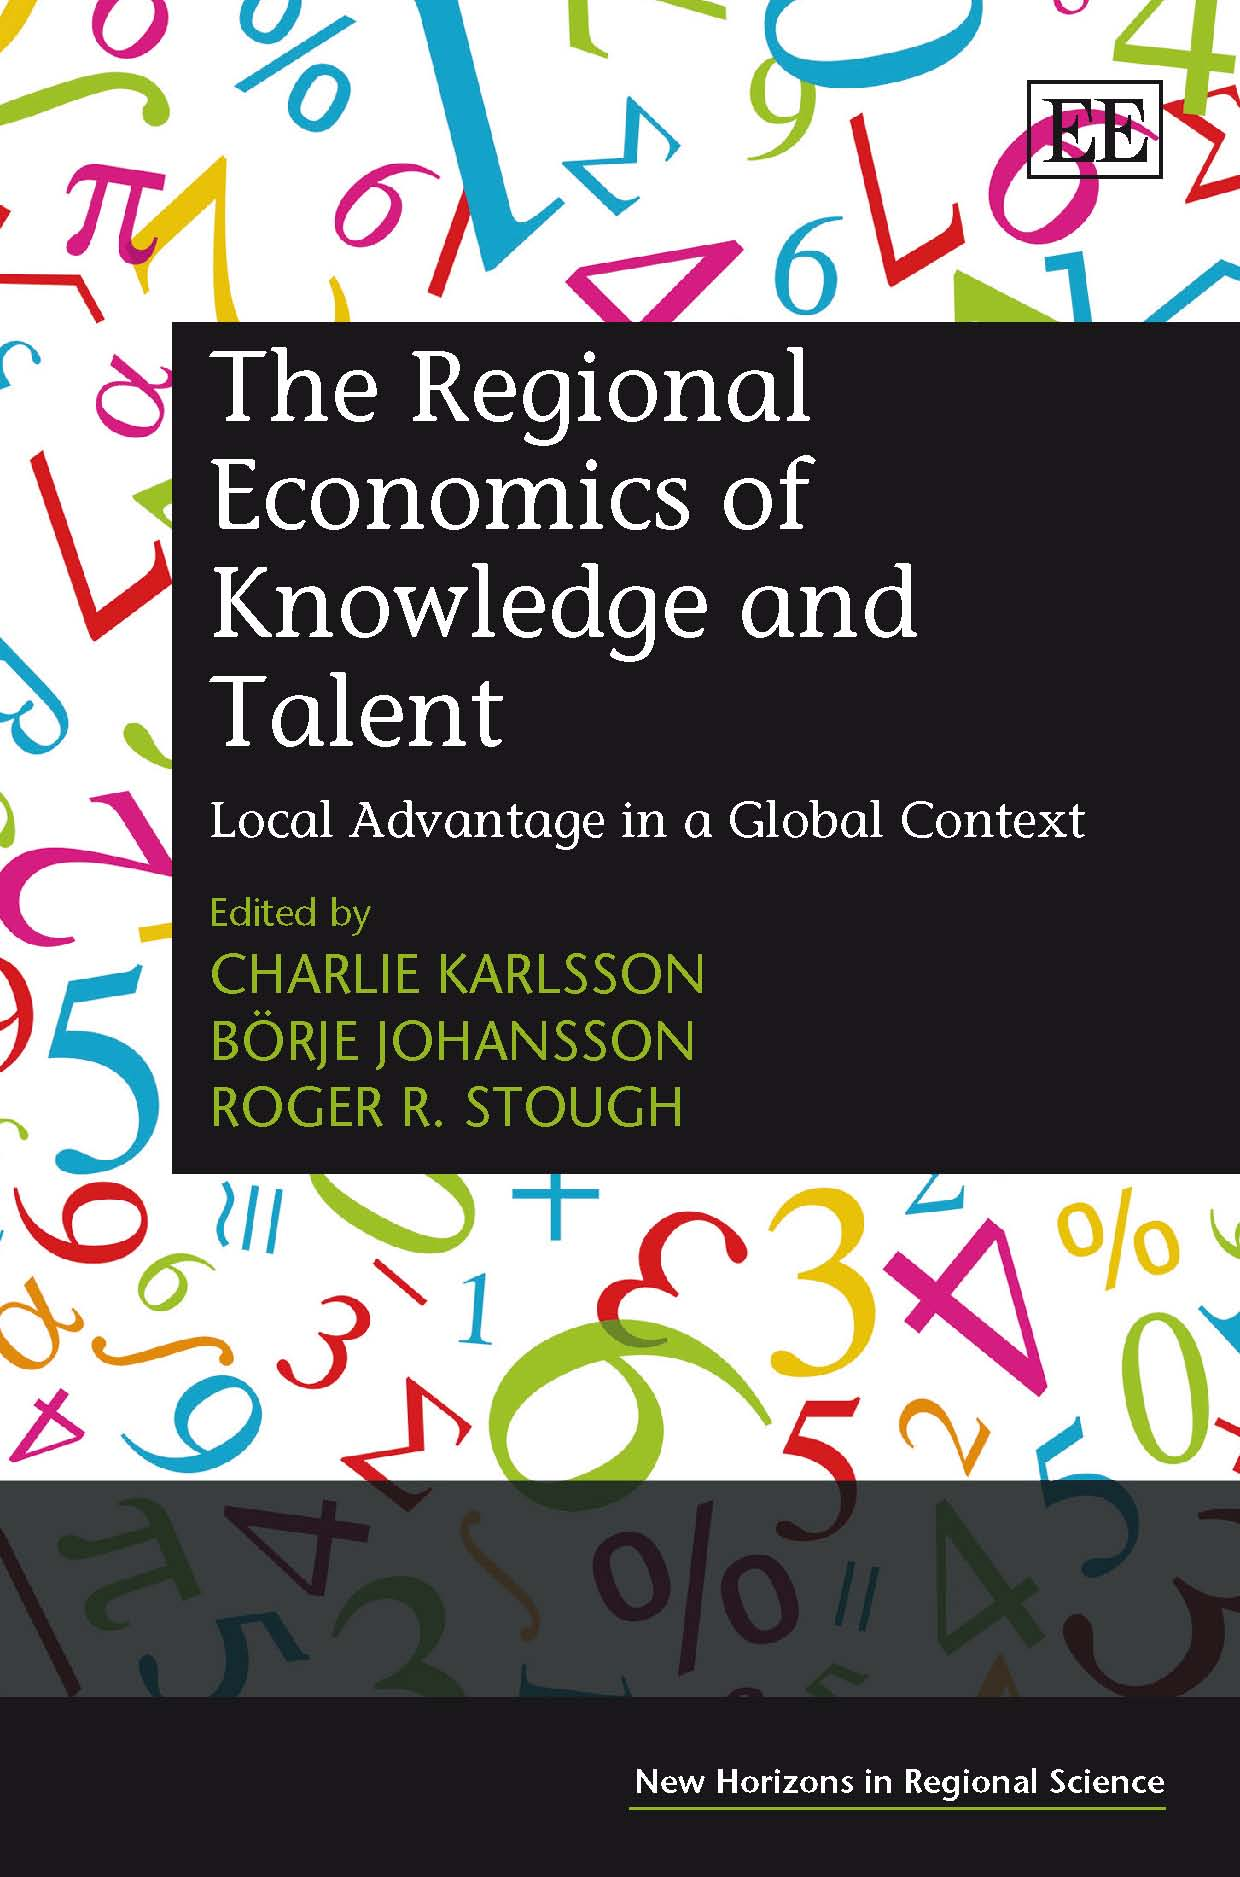 Download Ebook The Regional Economics of Knowledge and Talent by Charlie Karlsson Pdf